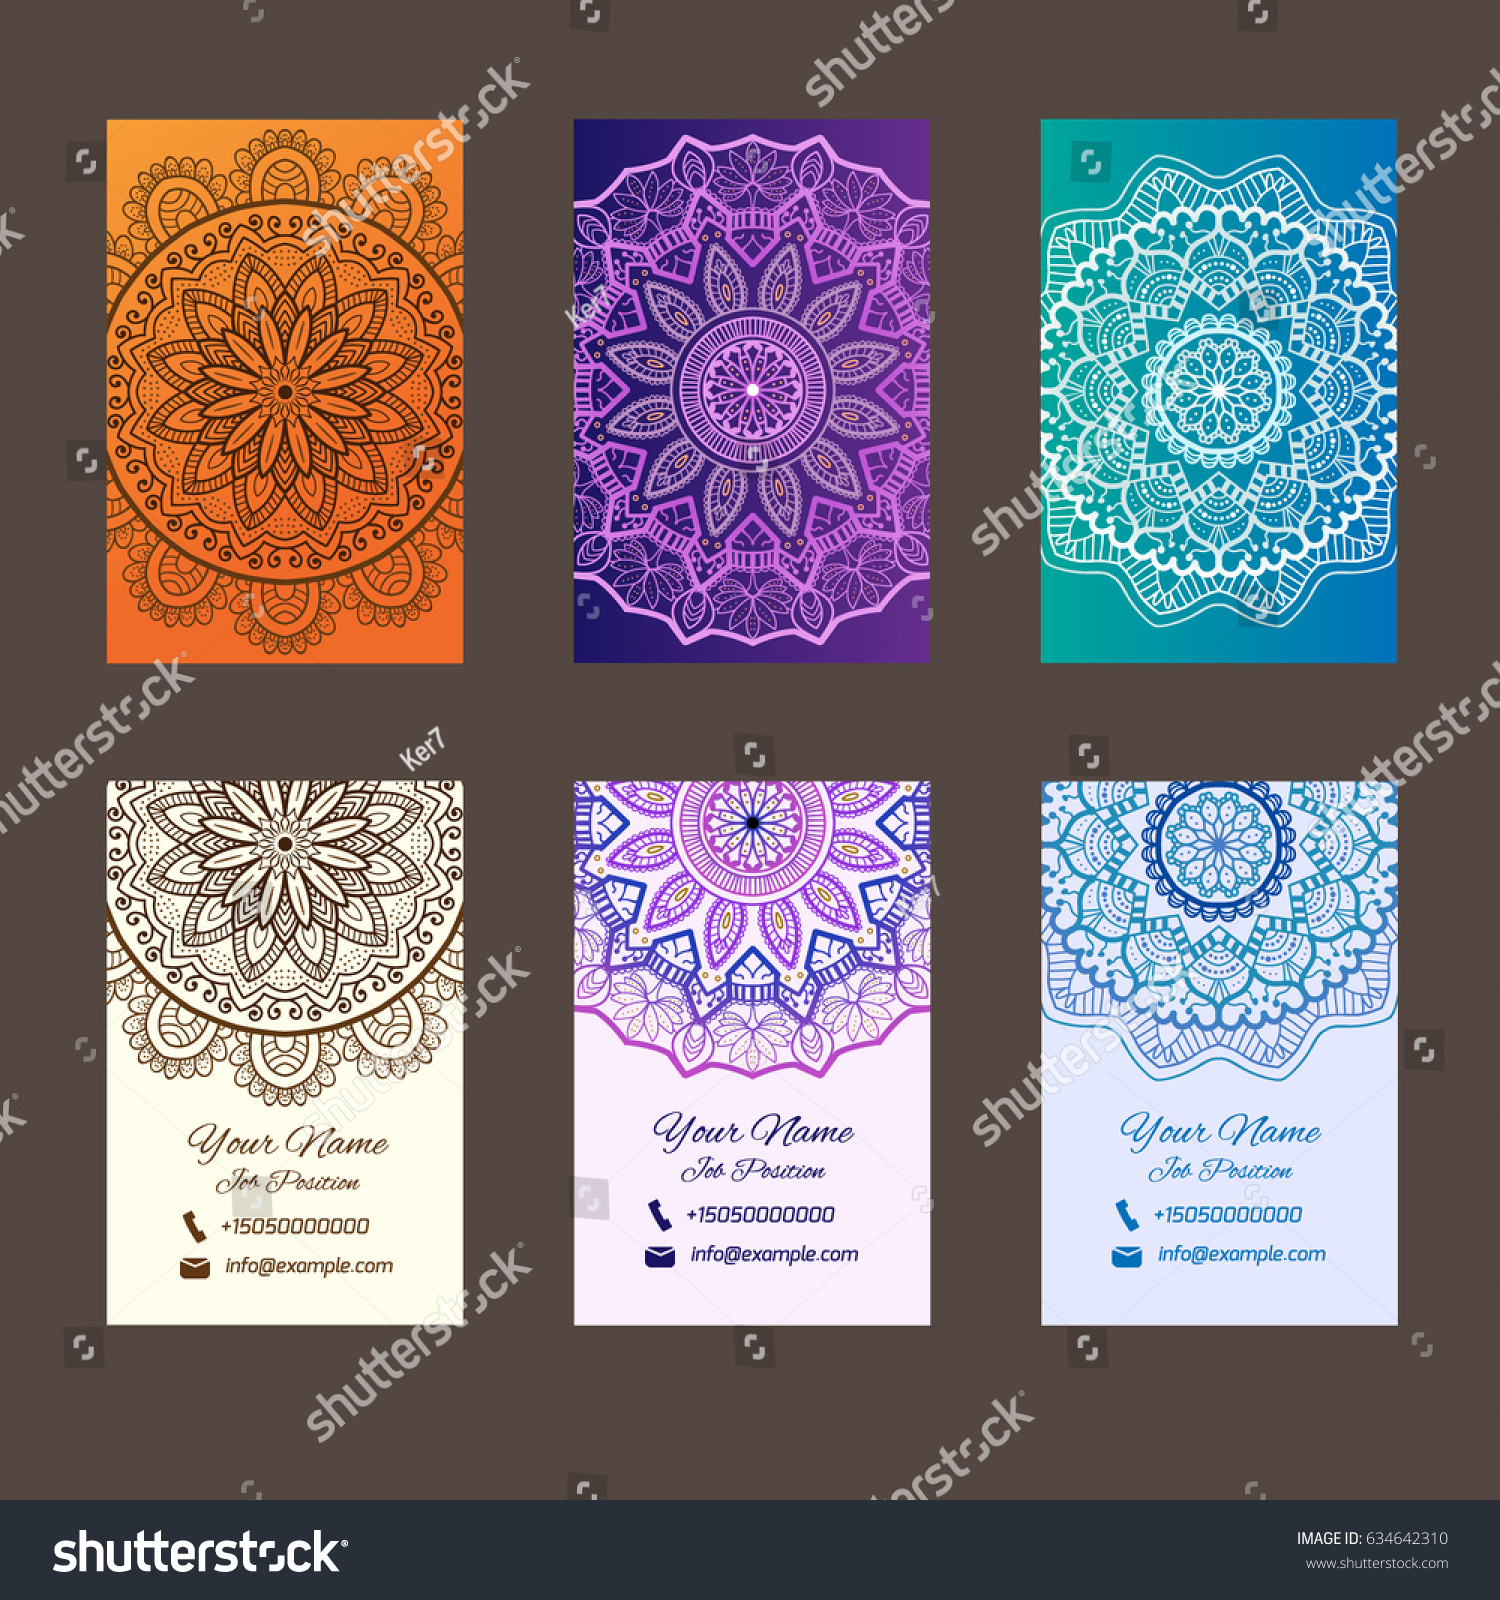 Business Cards Mandala Very Nice Shapes Stock Vector 634642310 ...